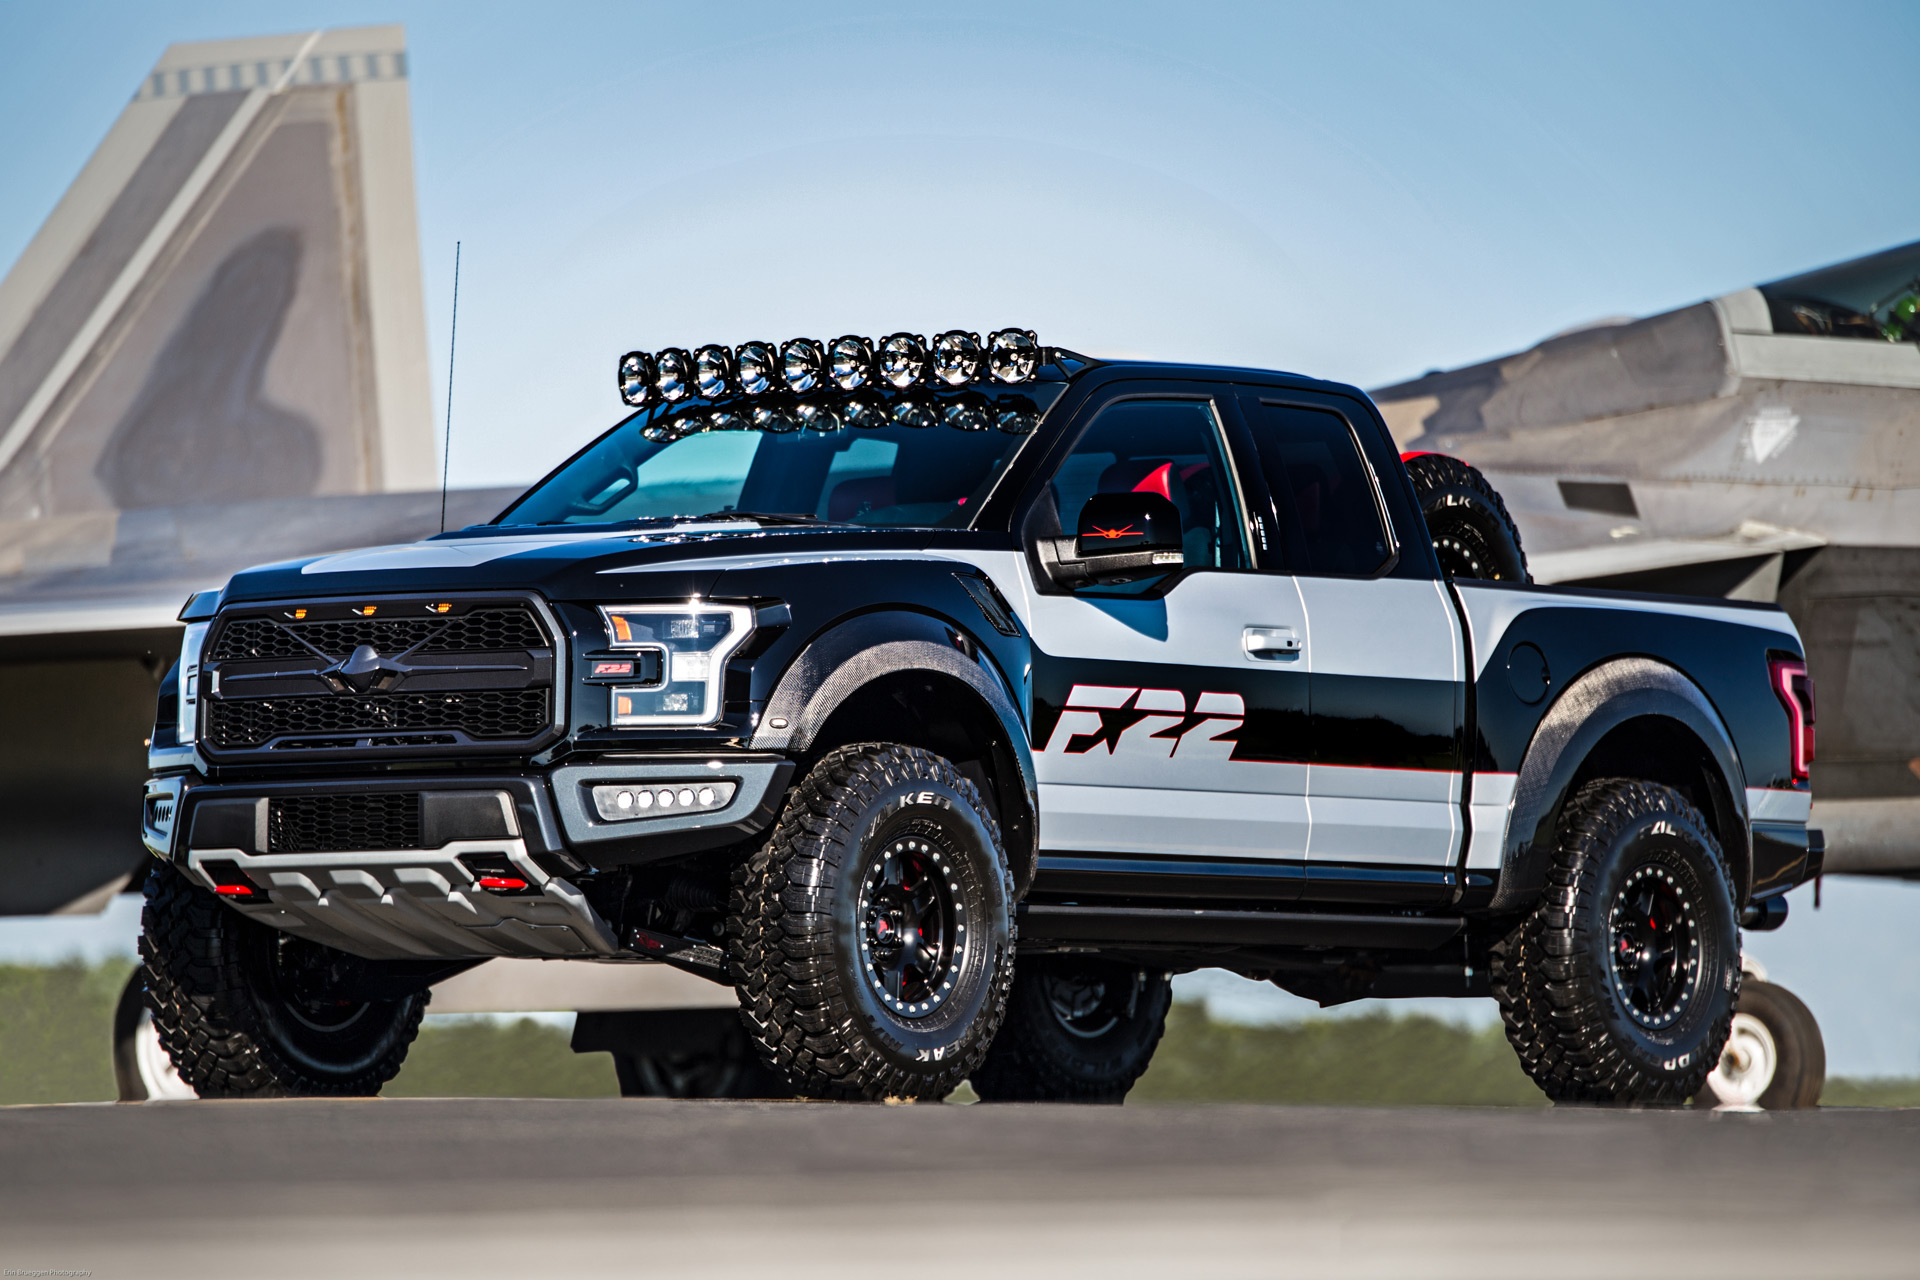 F-22-inspired F-150 Raptor raises $300K at 2017 EAA ...